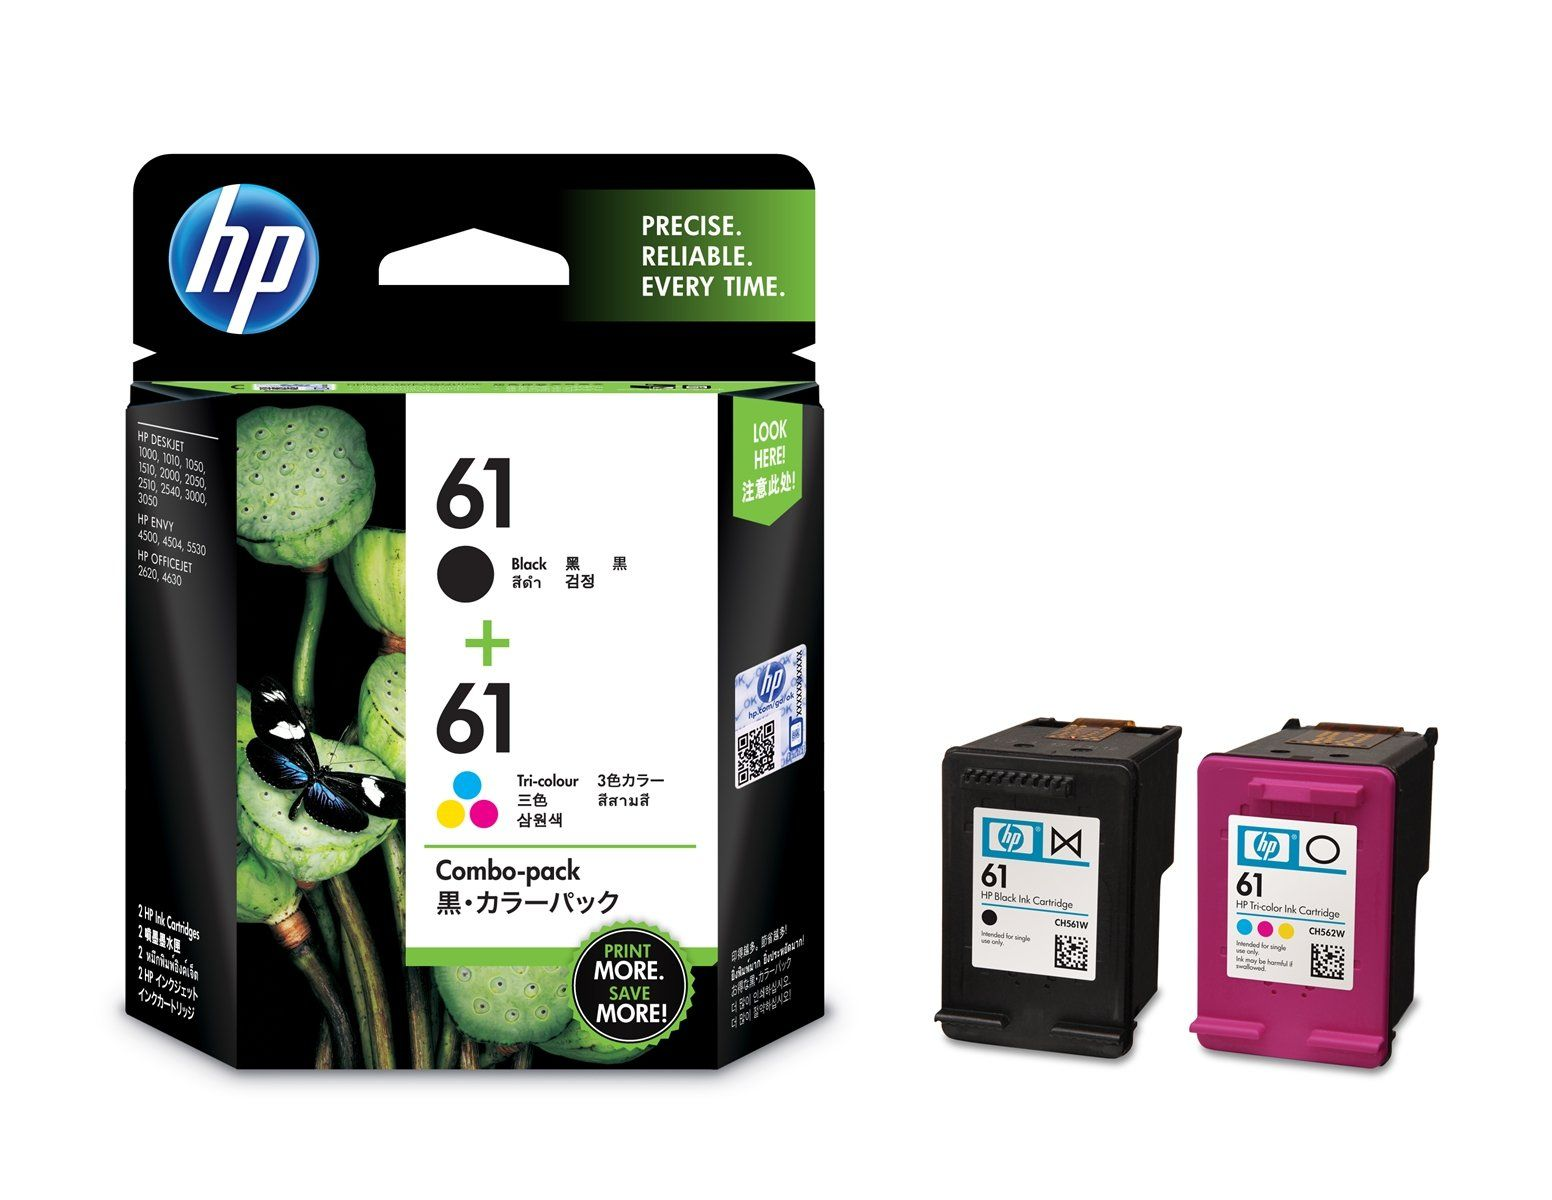 Amazon Com Hewlett Packard Ink Cartridge Hp61 Combo Pack Black 3 Colors Cr311aa Office Products Ink Cartridge Black Ink Cartridge Computer Accessories